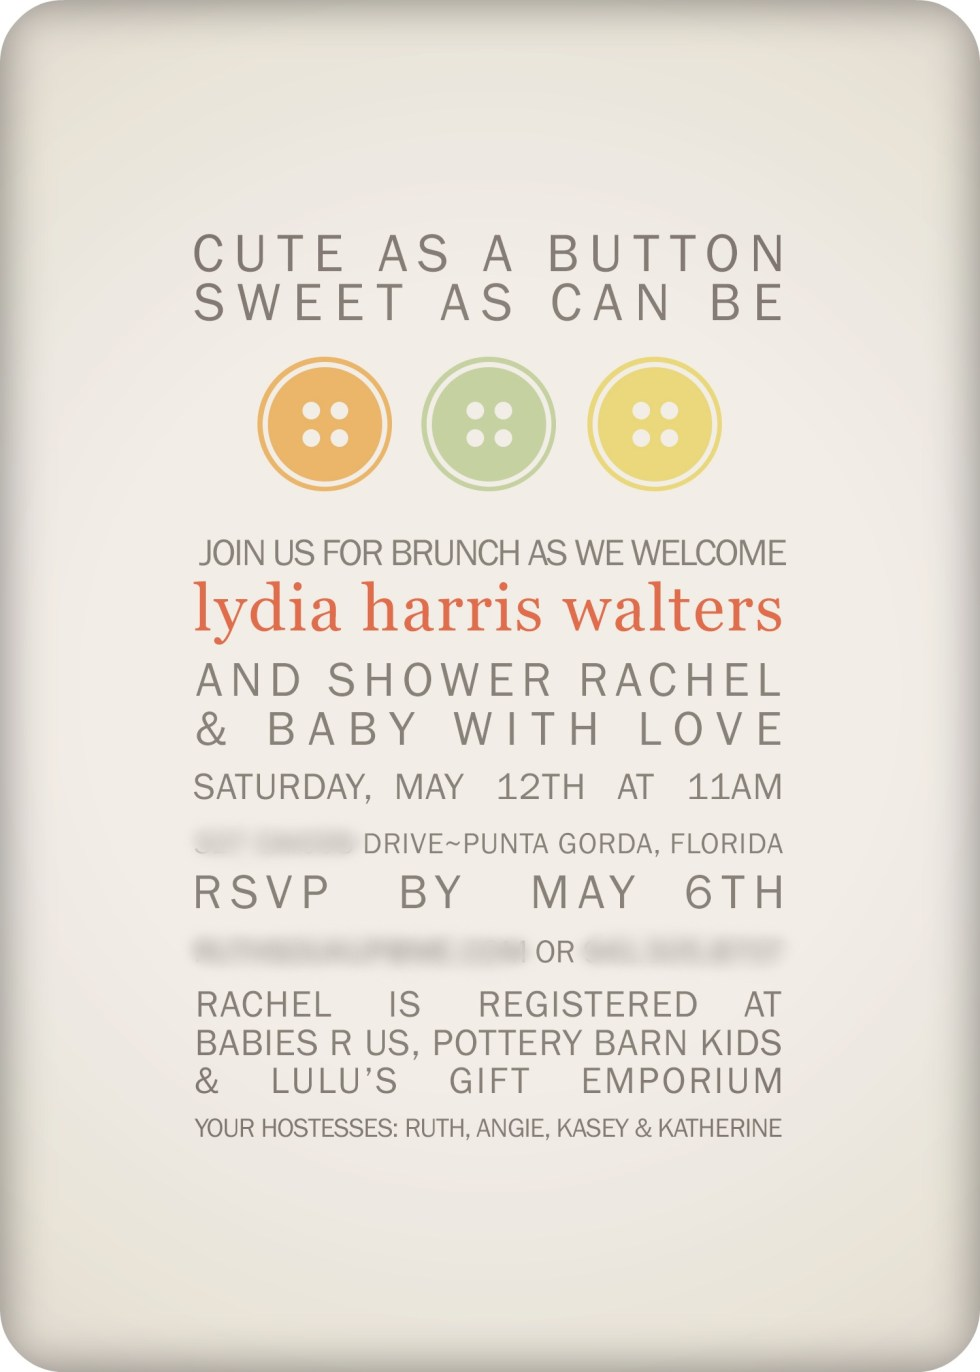 Cute as a Button Baby Shower | DIY & Budget Baby Shower ...